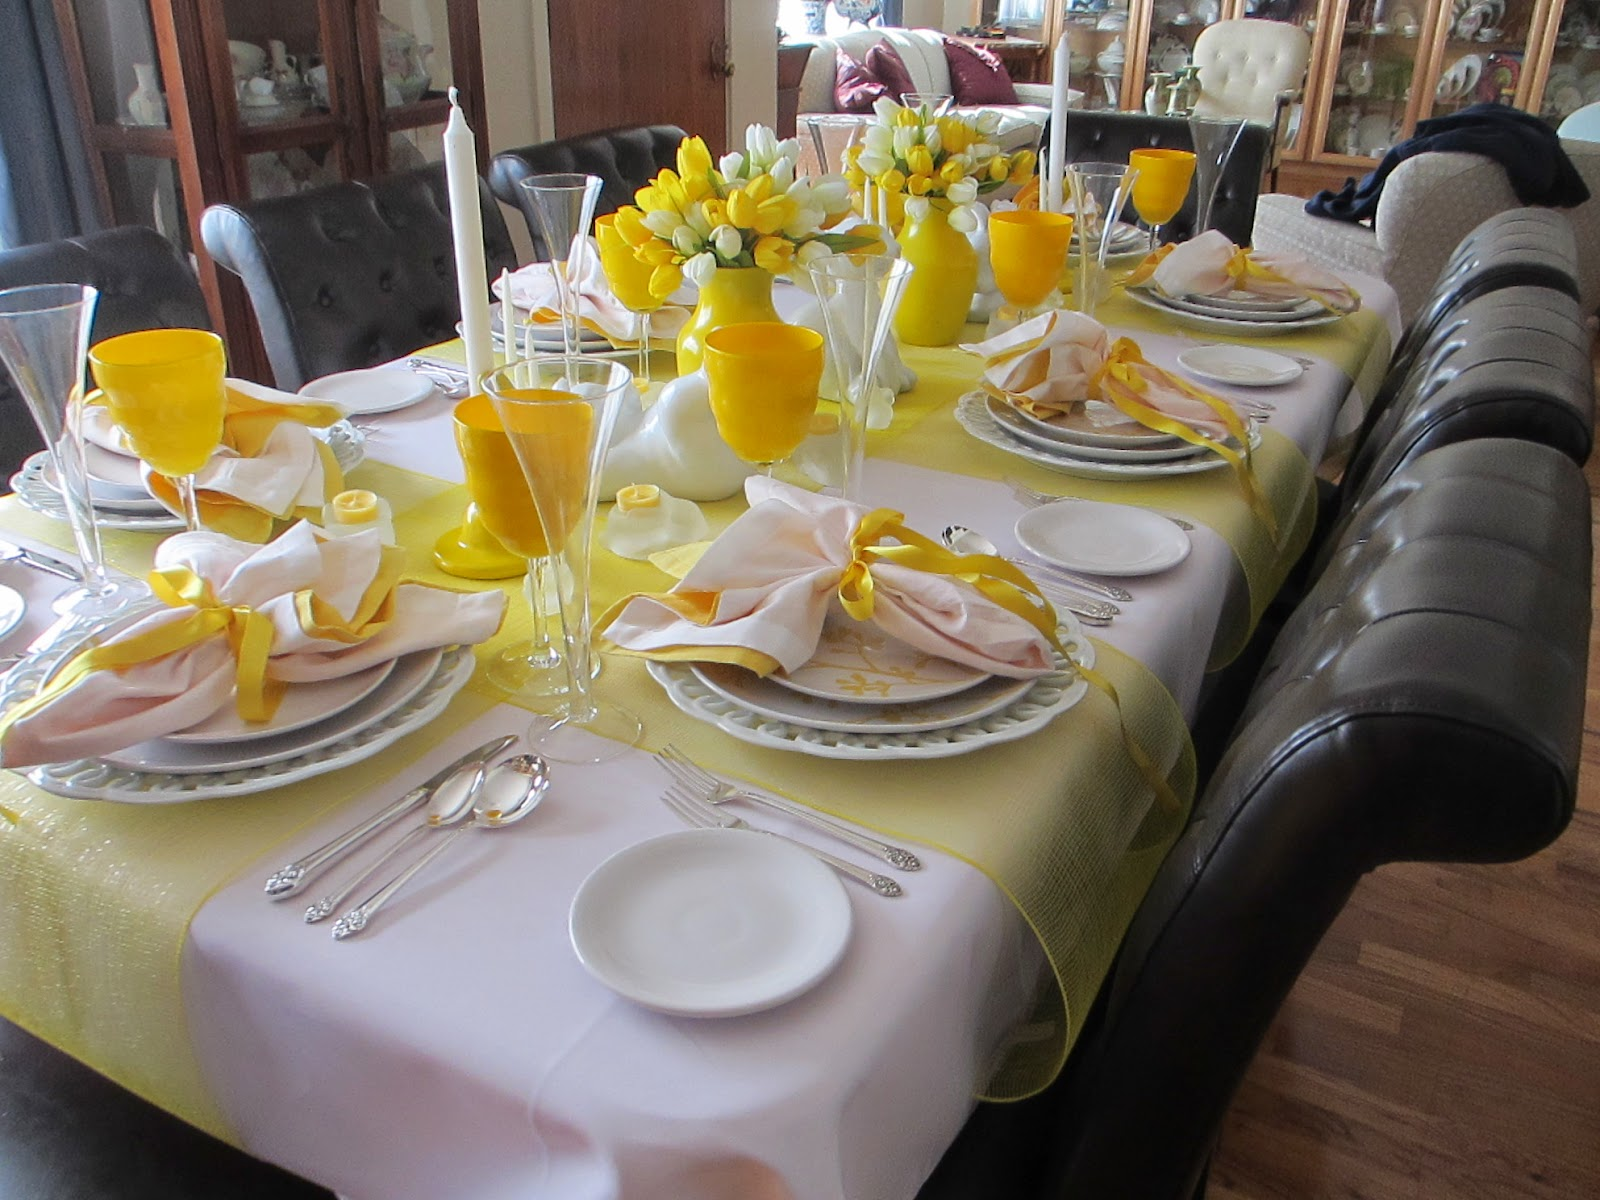 The Welcomed Guest Easter Dinner Table & Excellent Setting A Table For Easter Dinner Photos - Best Image ...